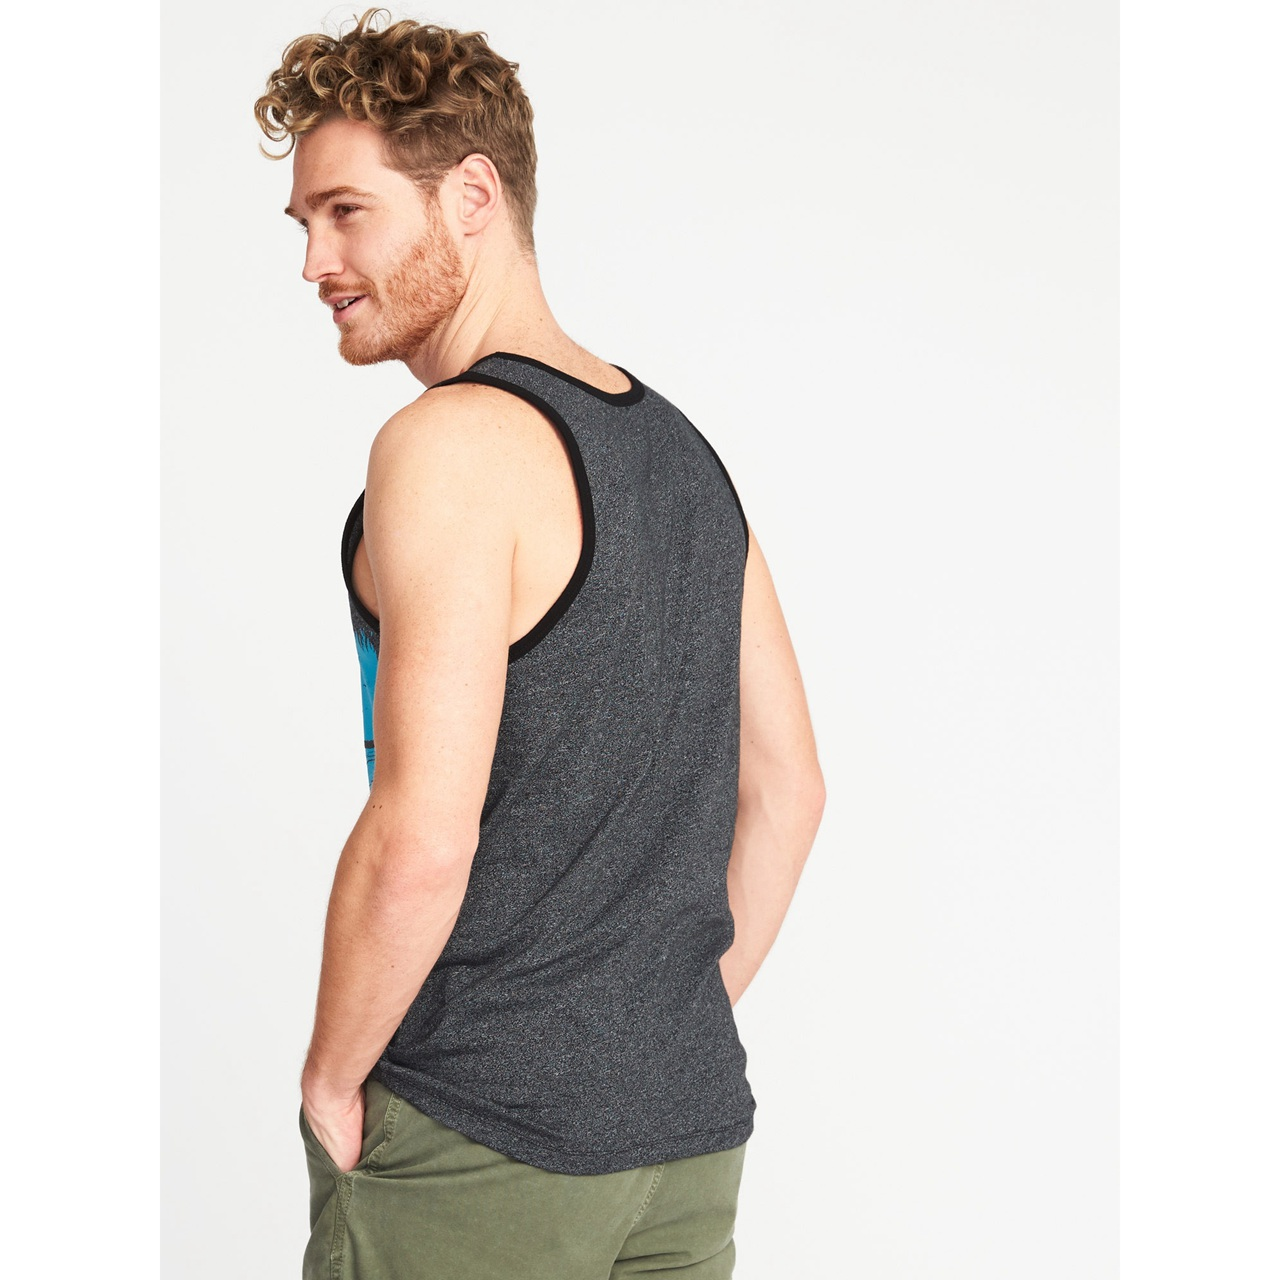 2d4e9f71dfe297 Mens Sleeveless Shirts Old Navy - BCD Tofu House